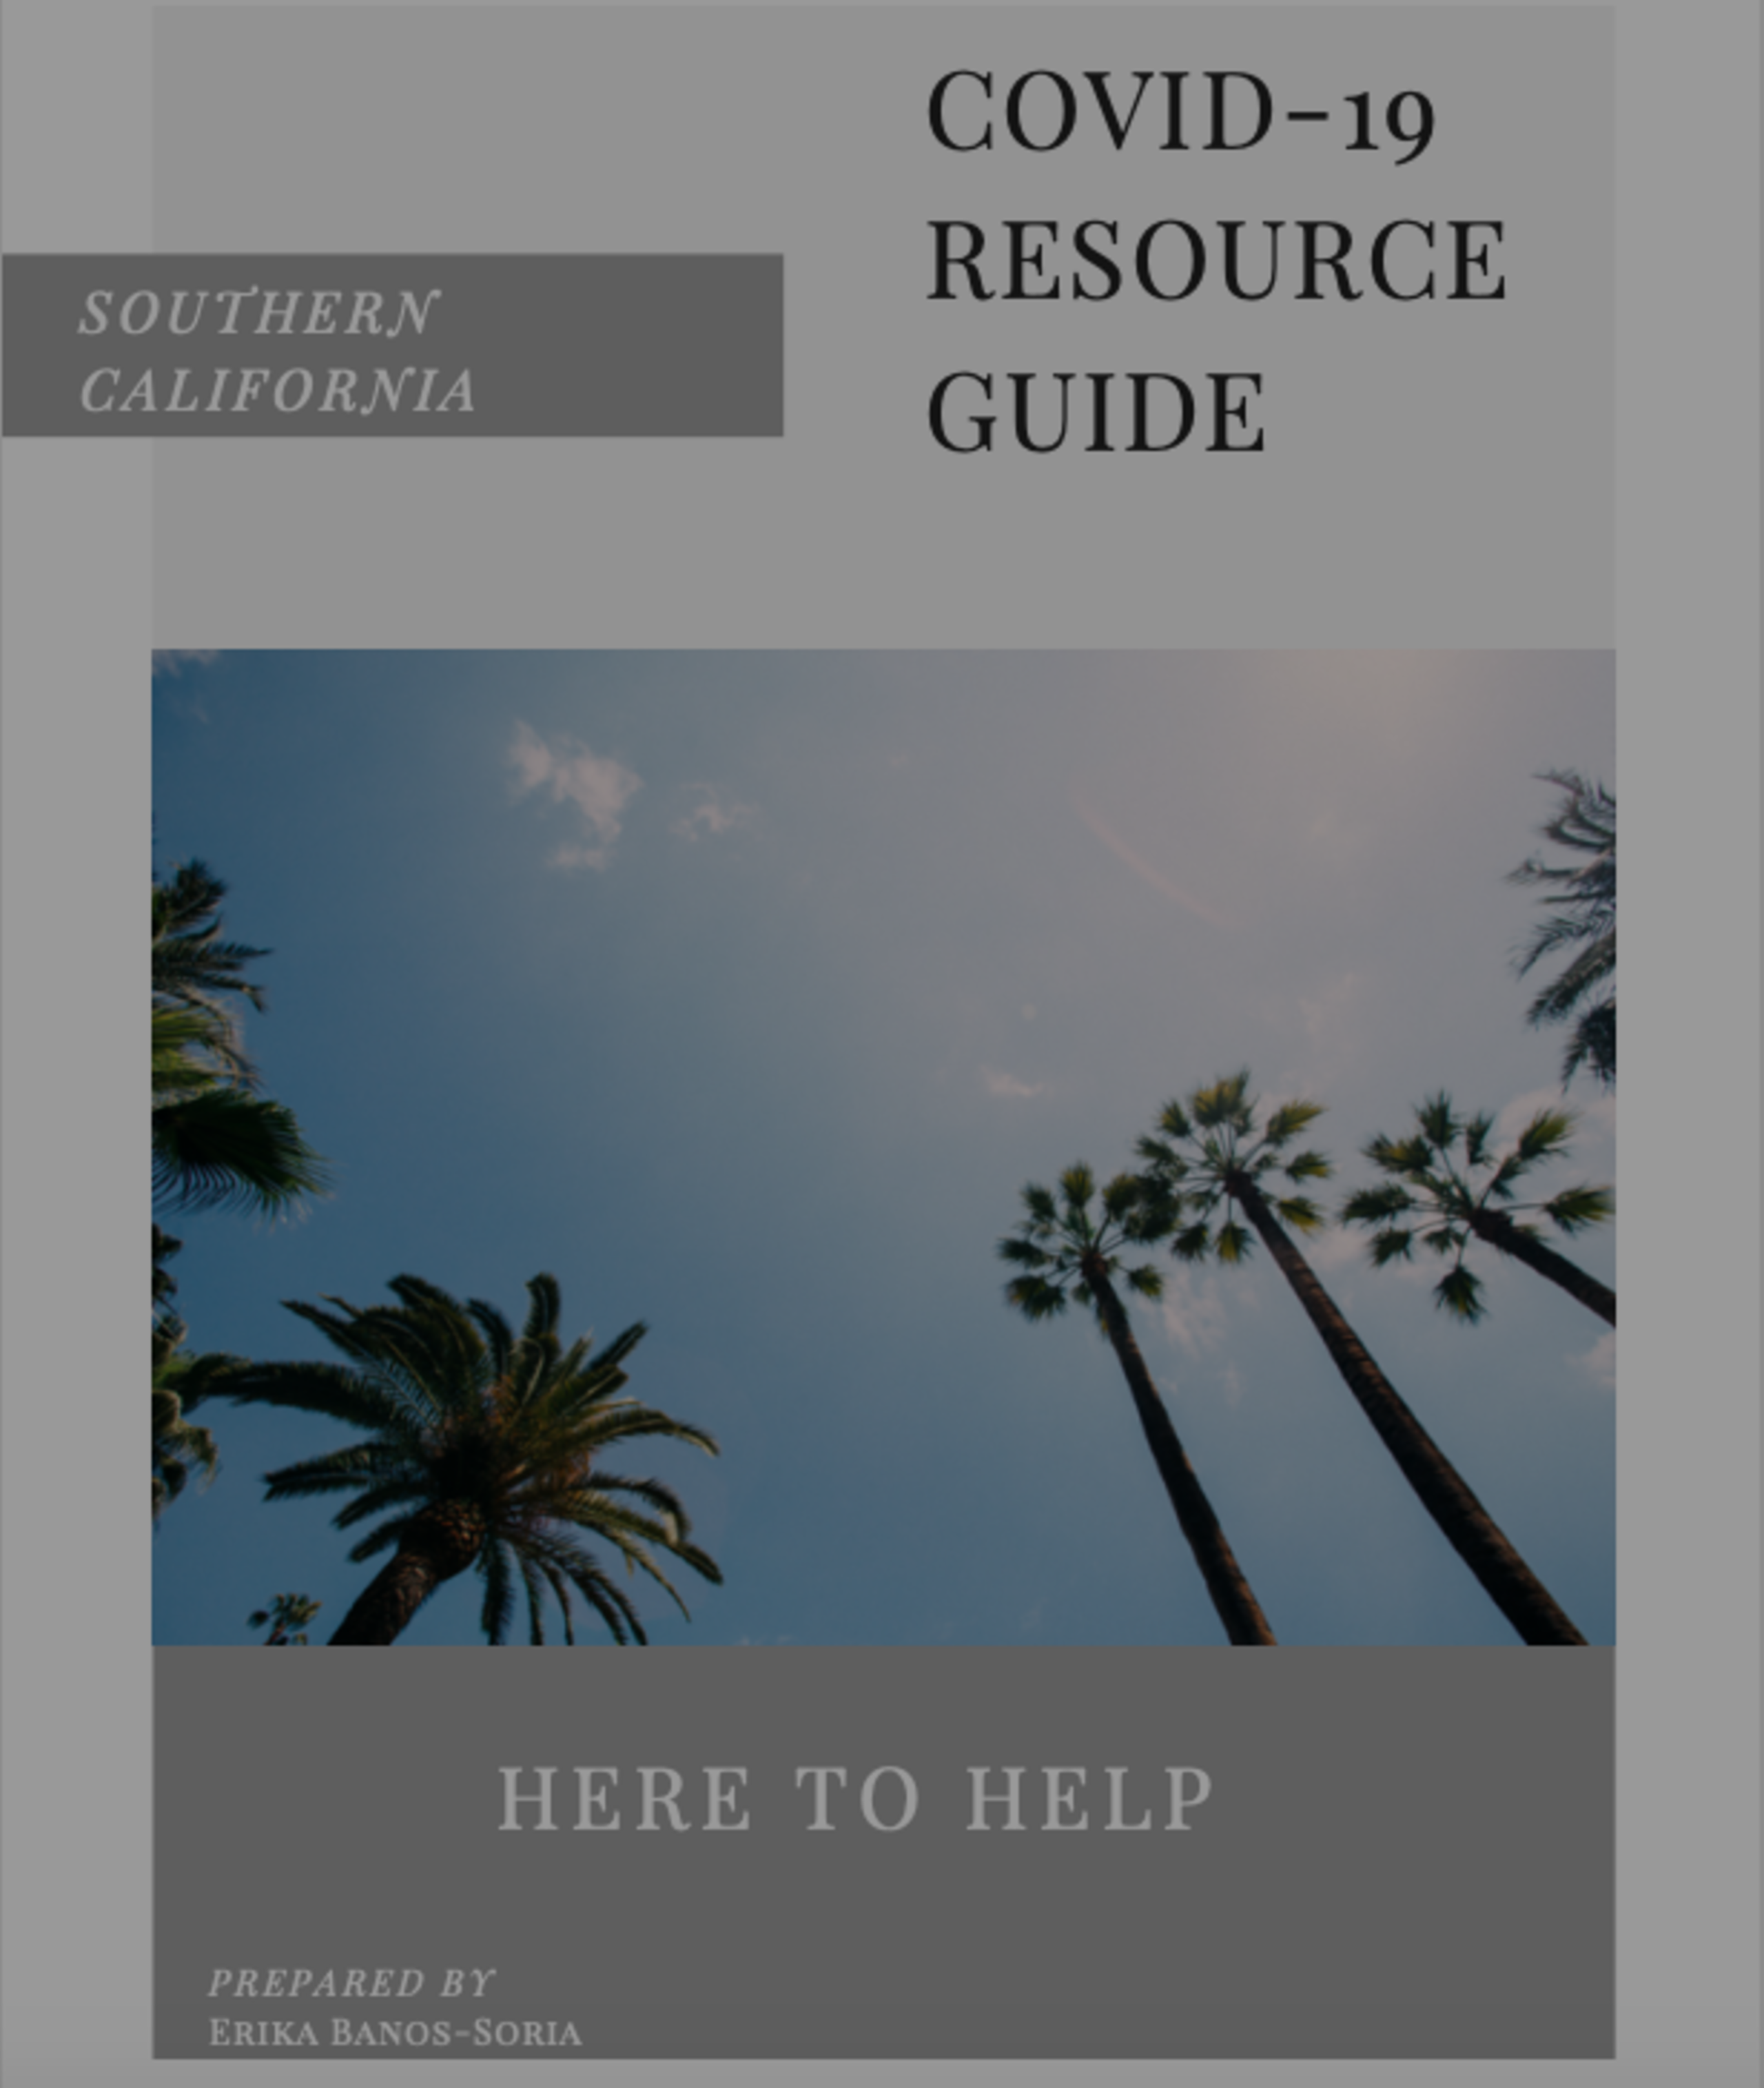 COVID-19 Resource Guide